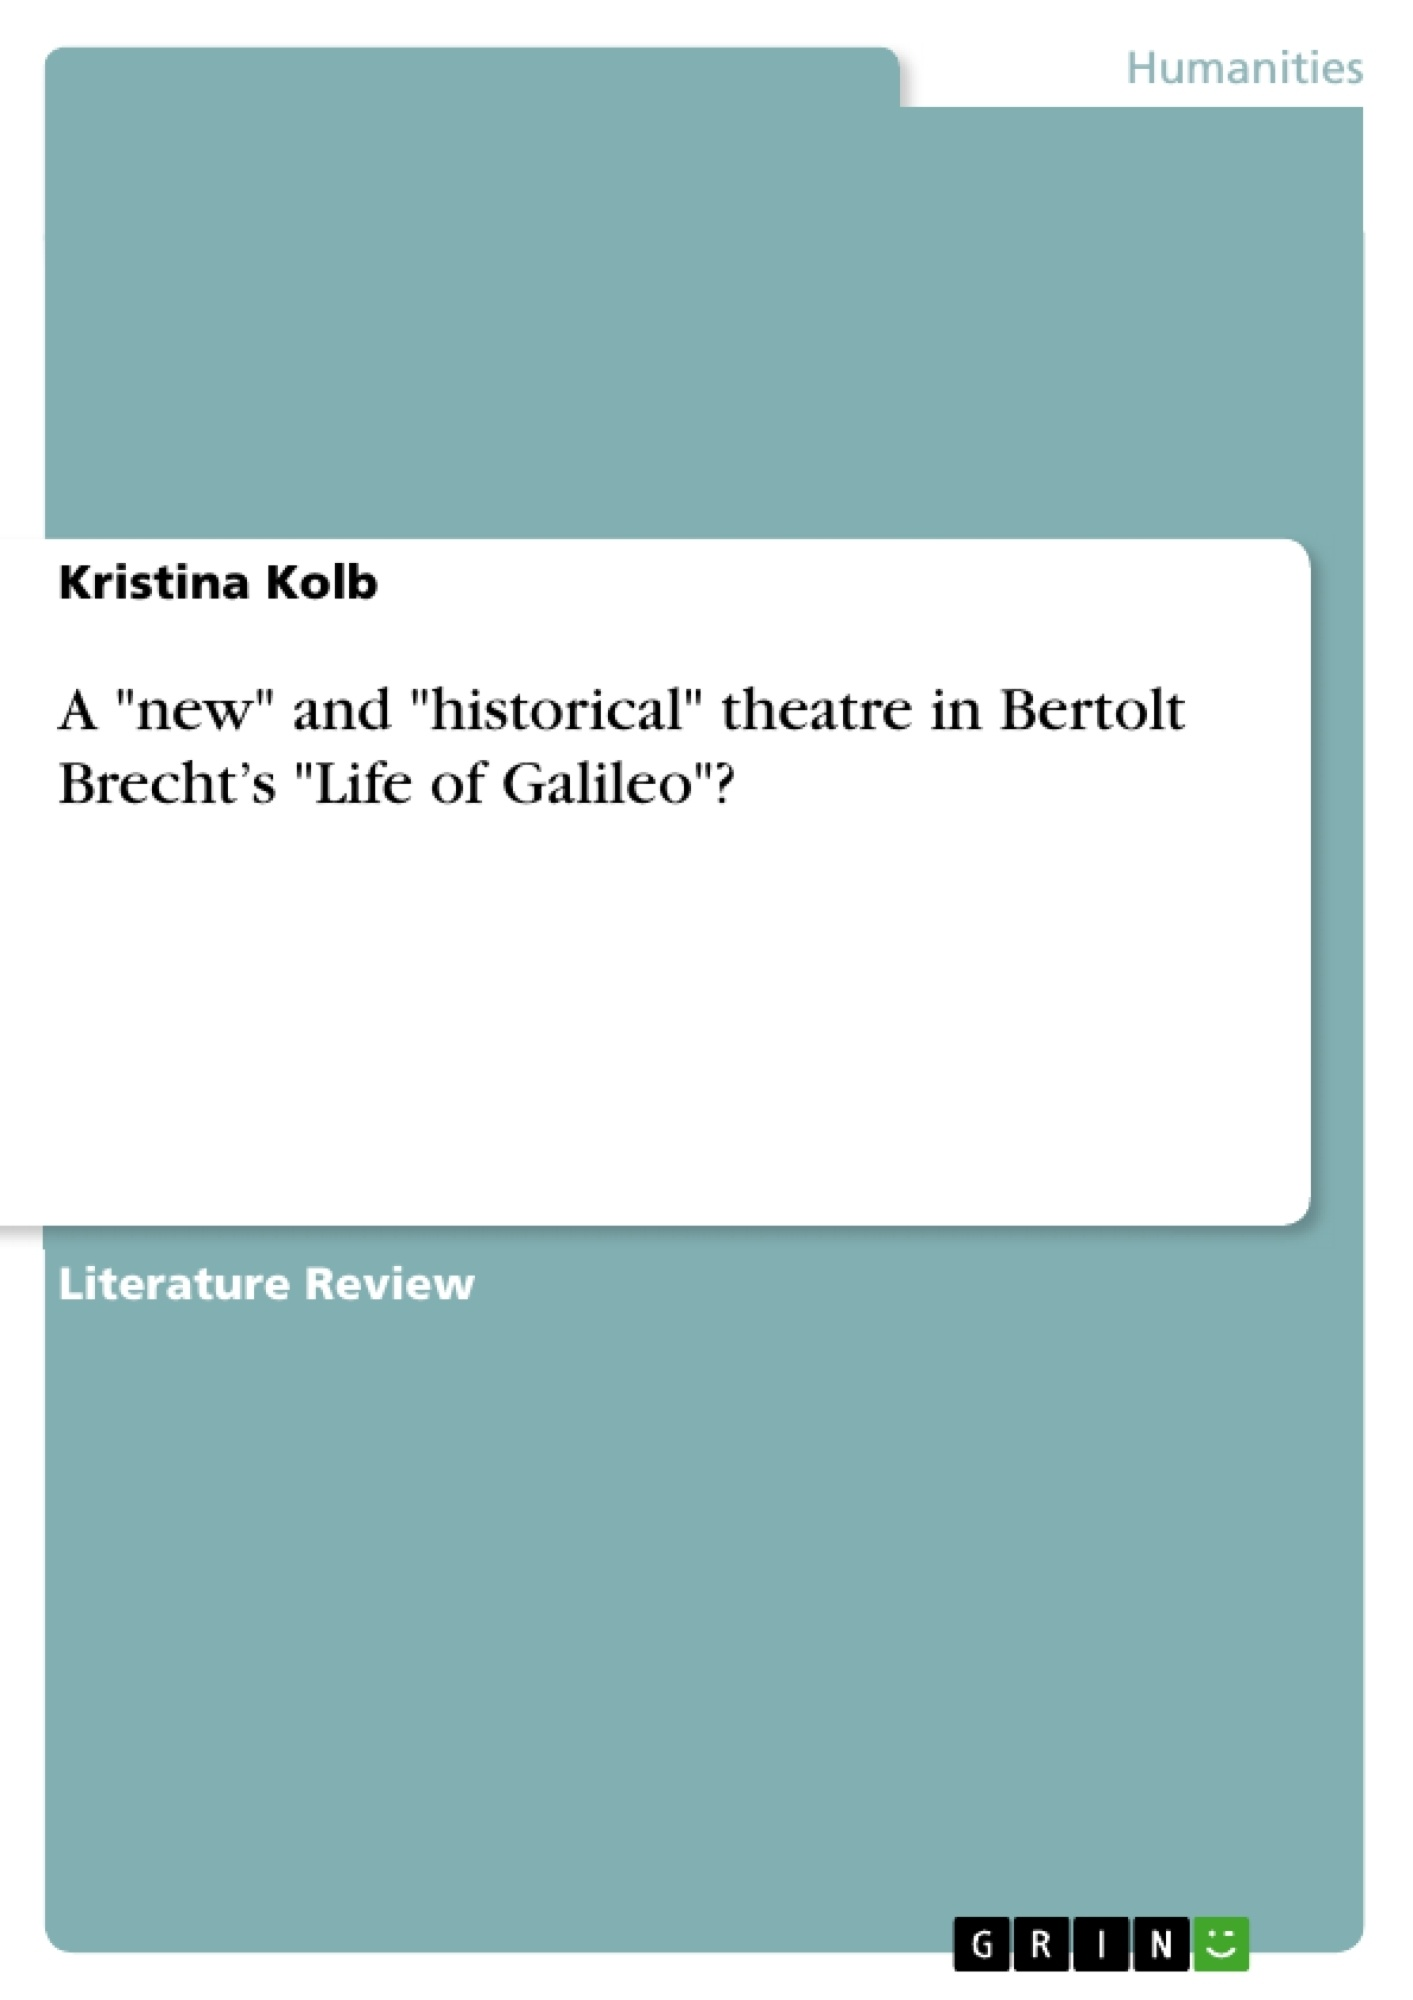 """Title: A """"new"""" and """"historical"""" theatre in Bertolt Brecht's """"Life of Galileo""""?"""